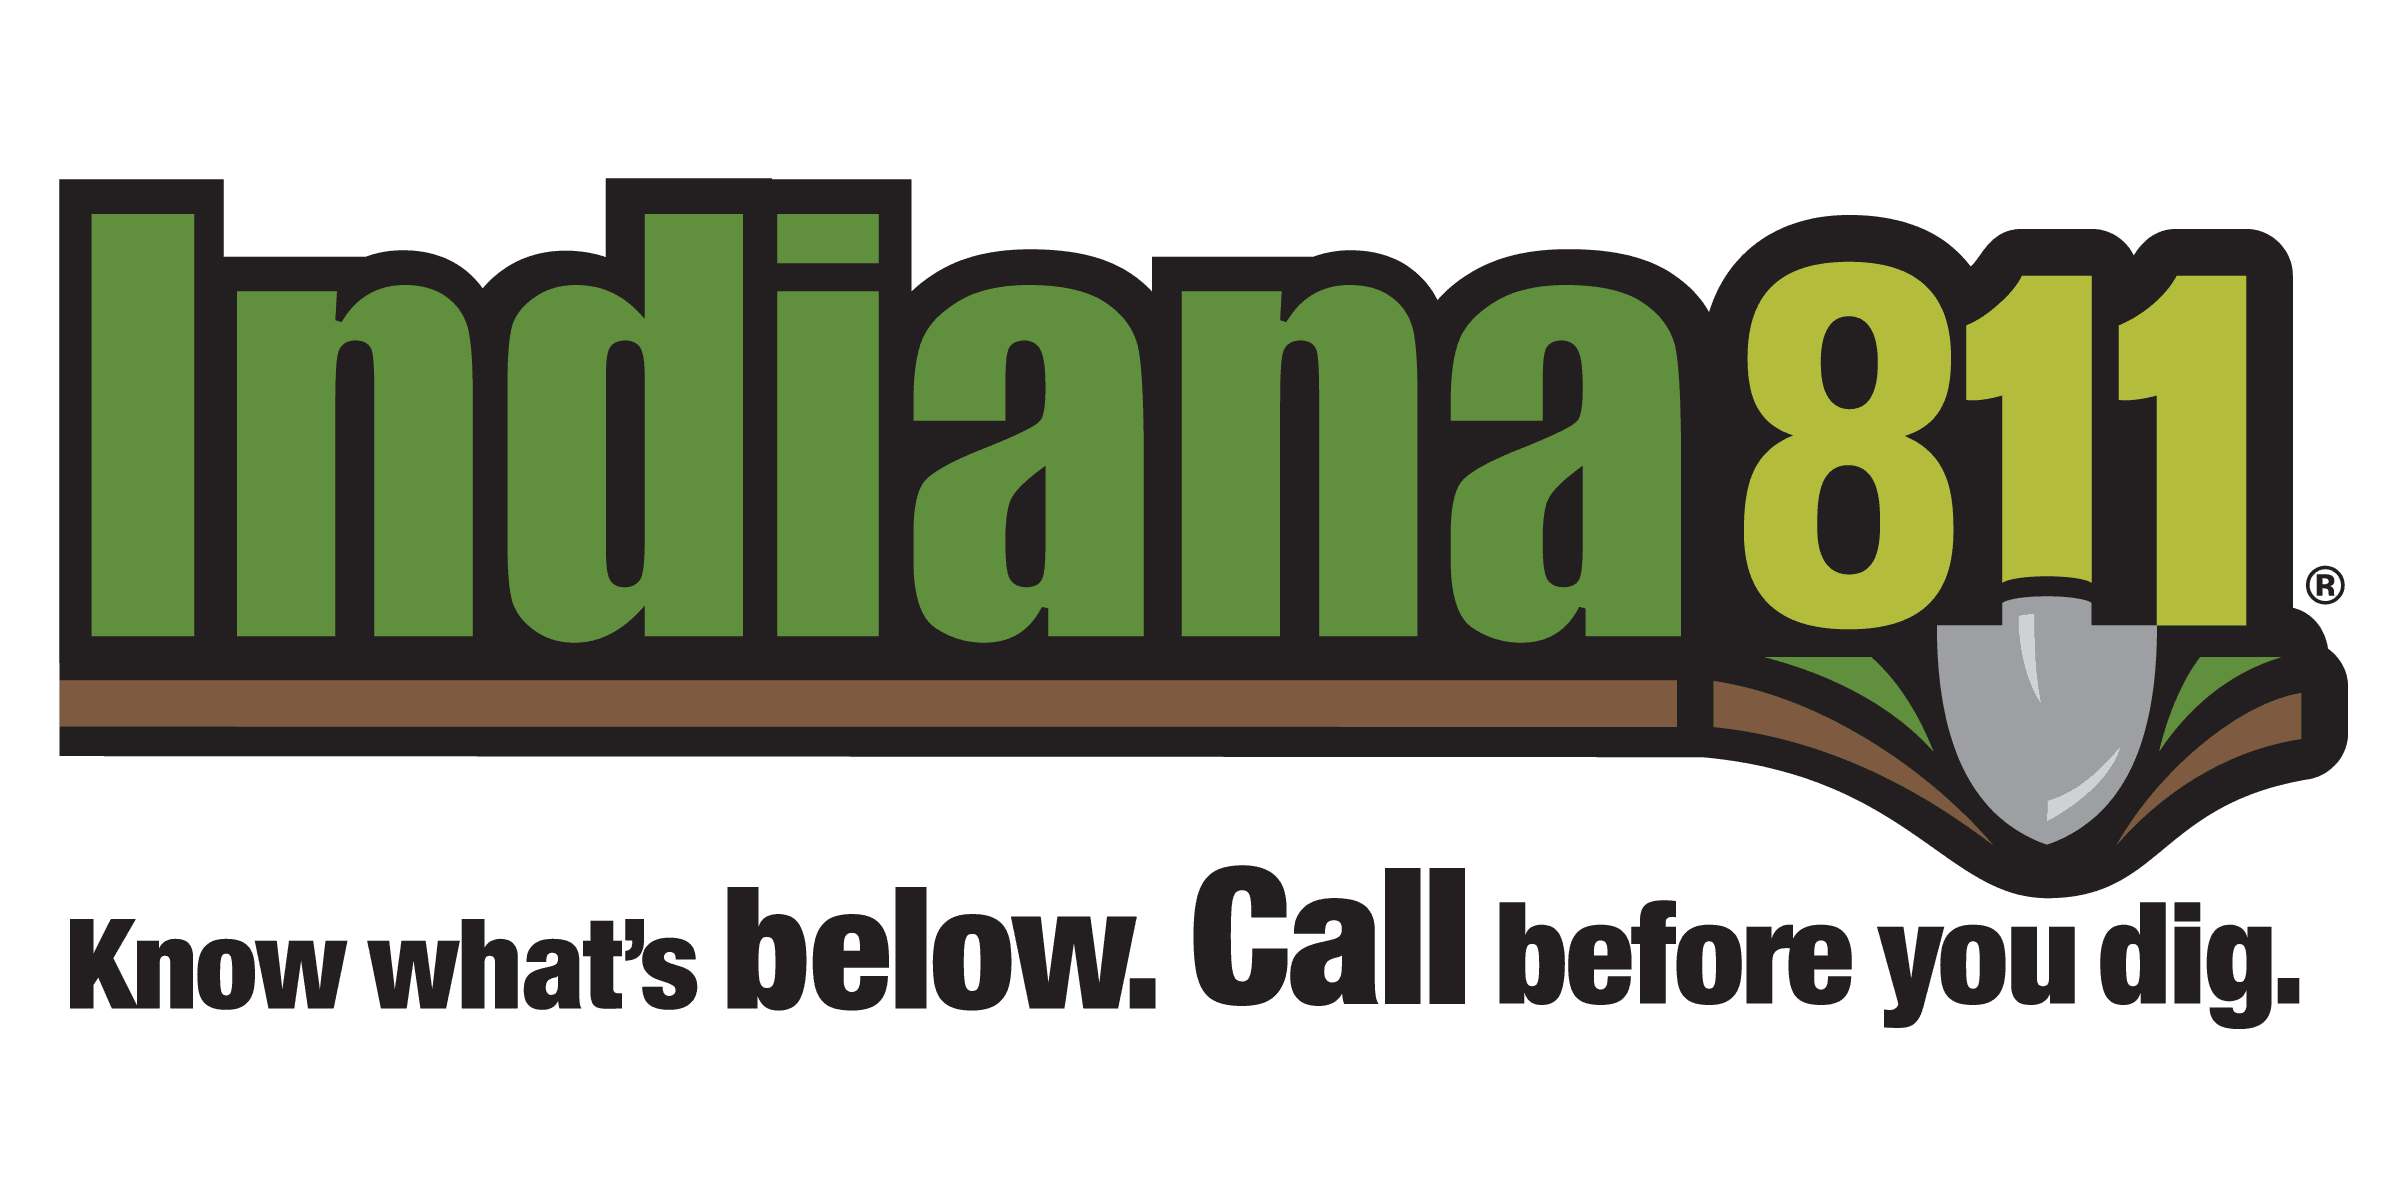 http://silvercreekwater.org/wp-content/uploads/2021/09/indiana-811-final.png